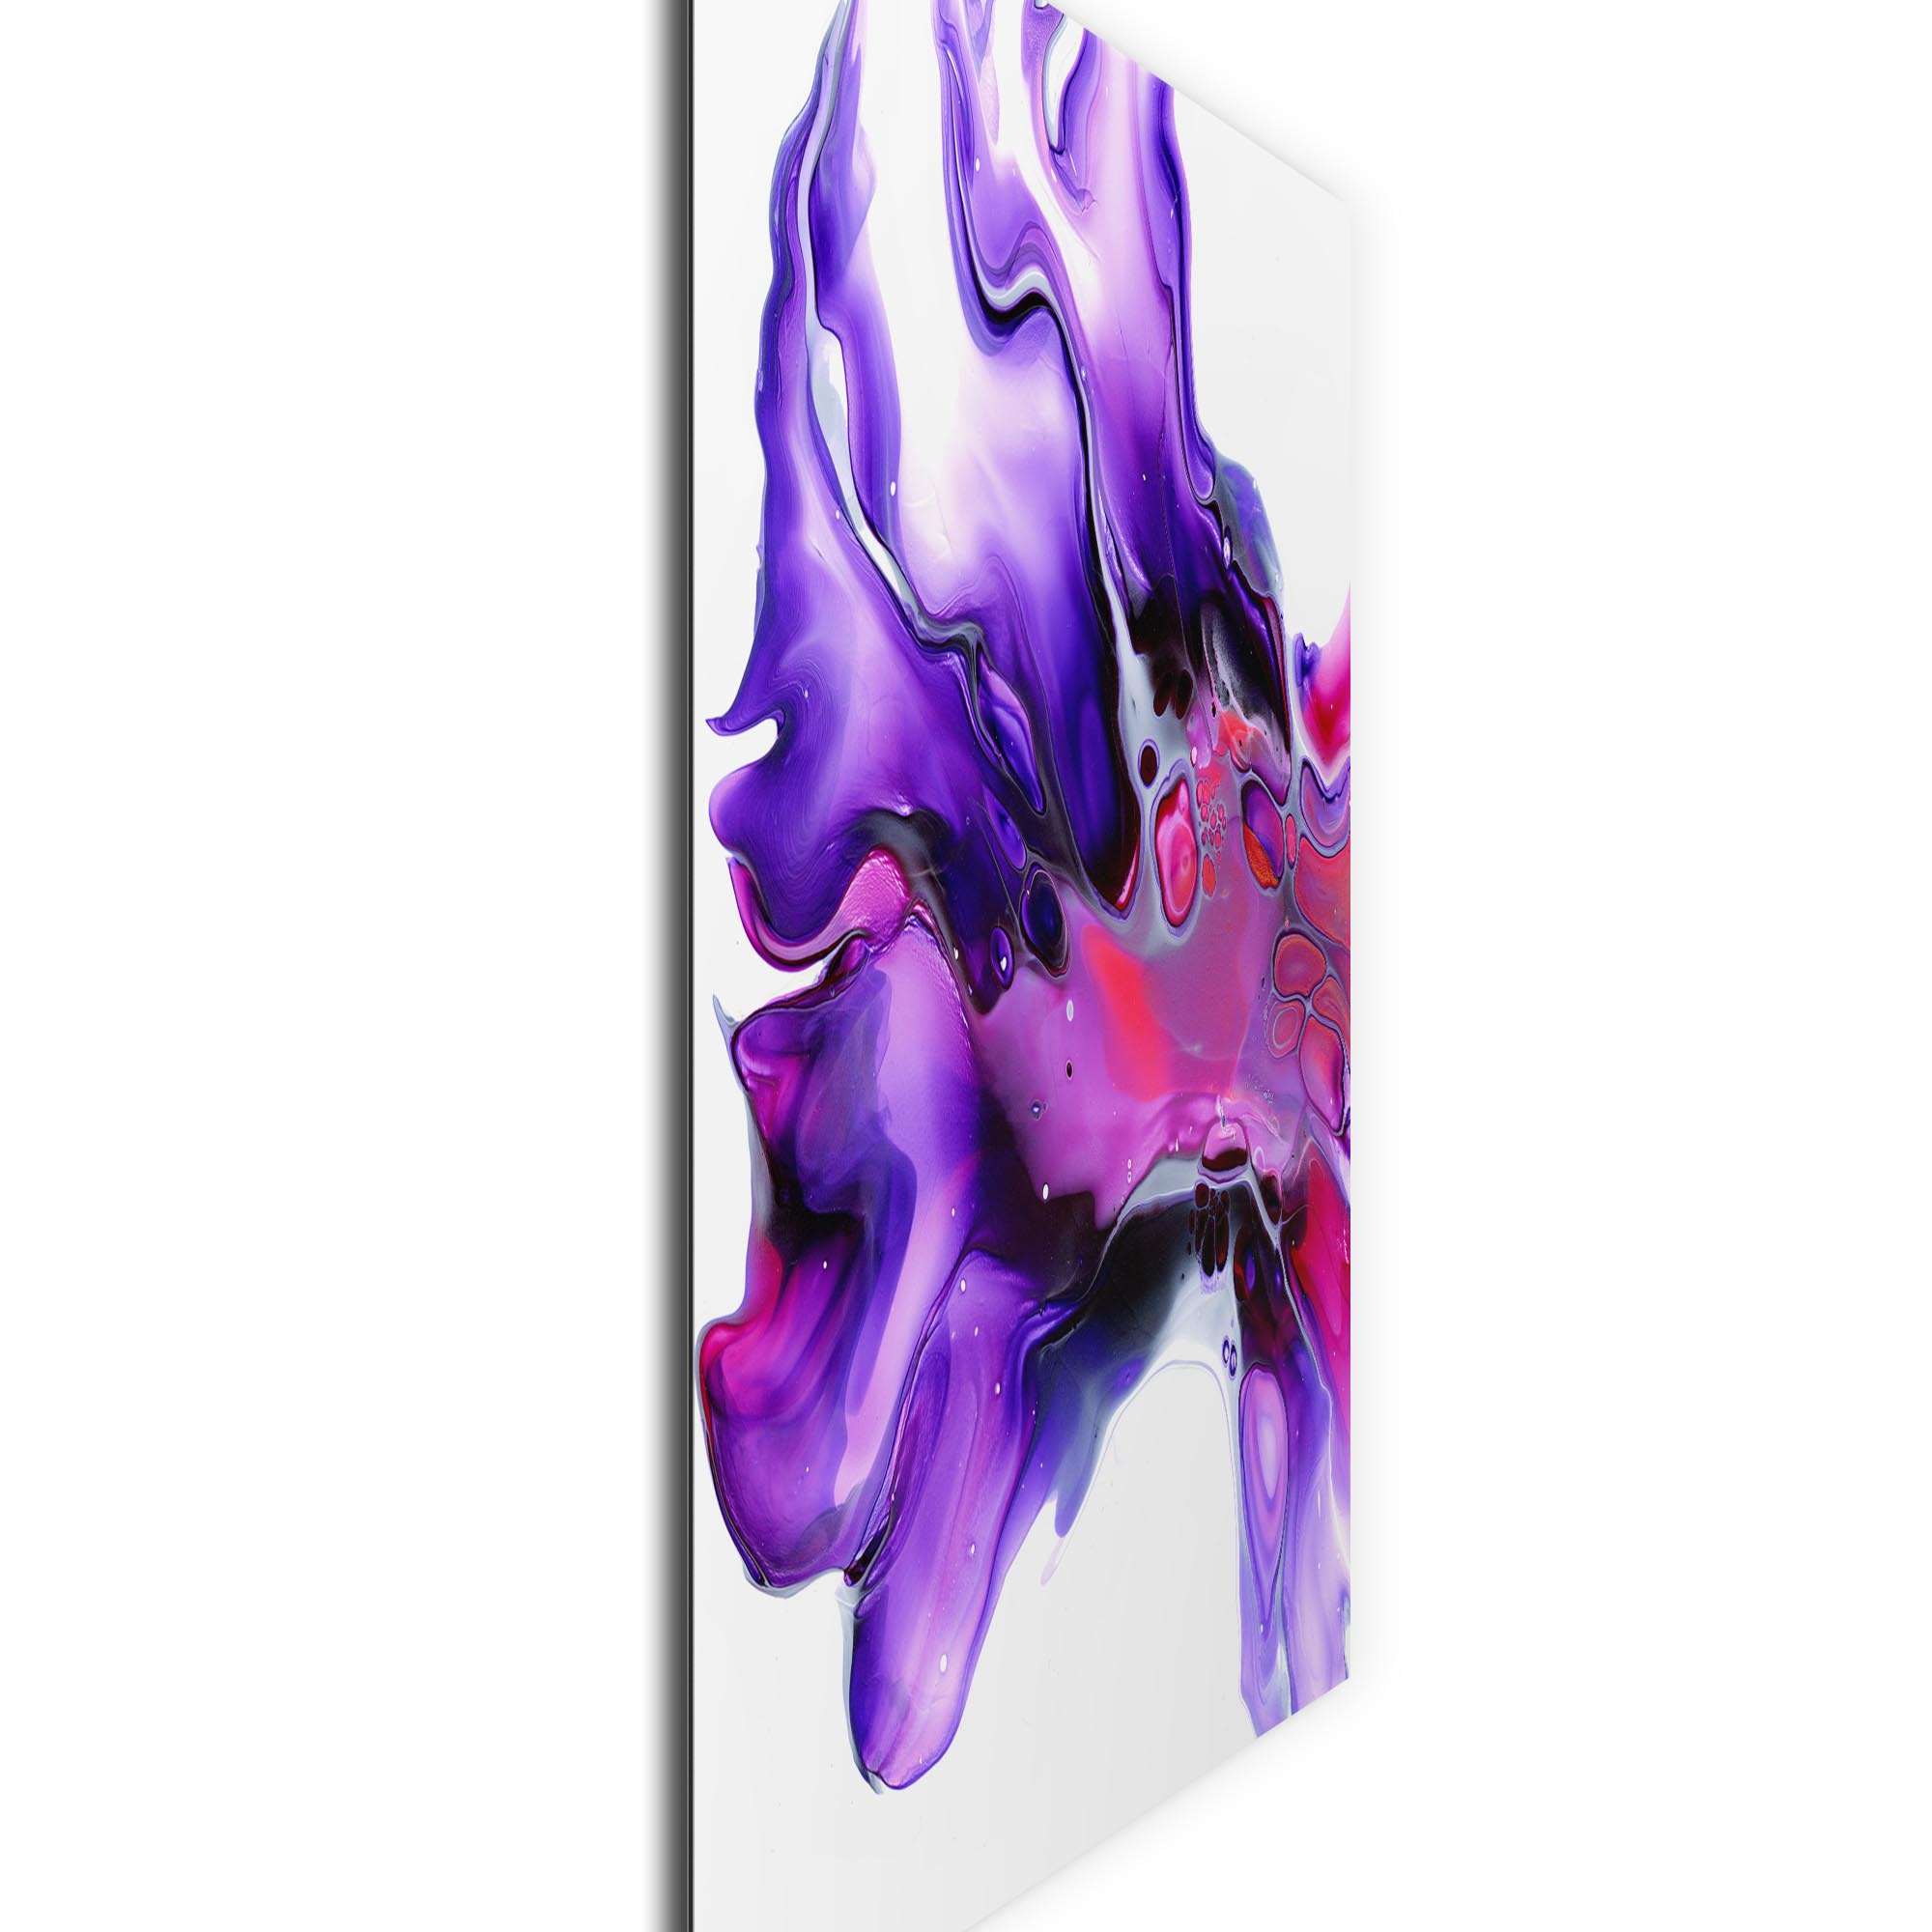 Posy by Elana Reiter - Abstract Wall Art, Modern Home Decor (36in x 36in) - Image 2